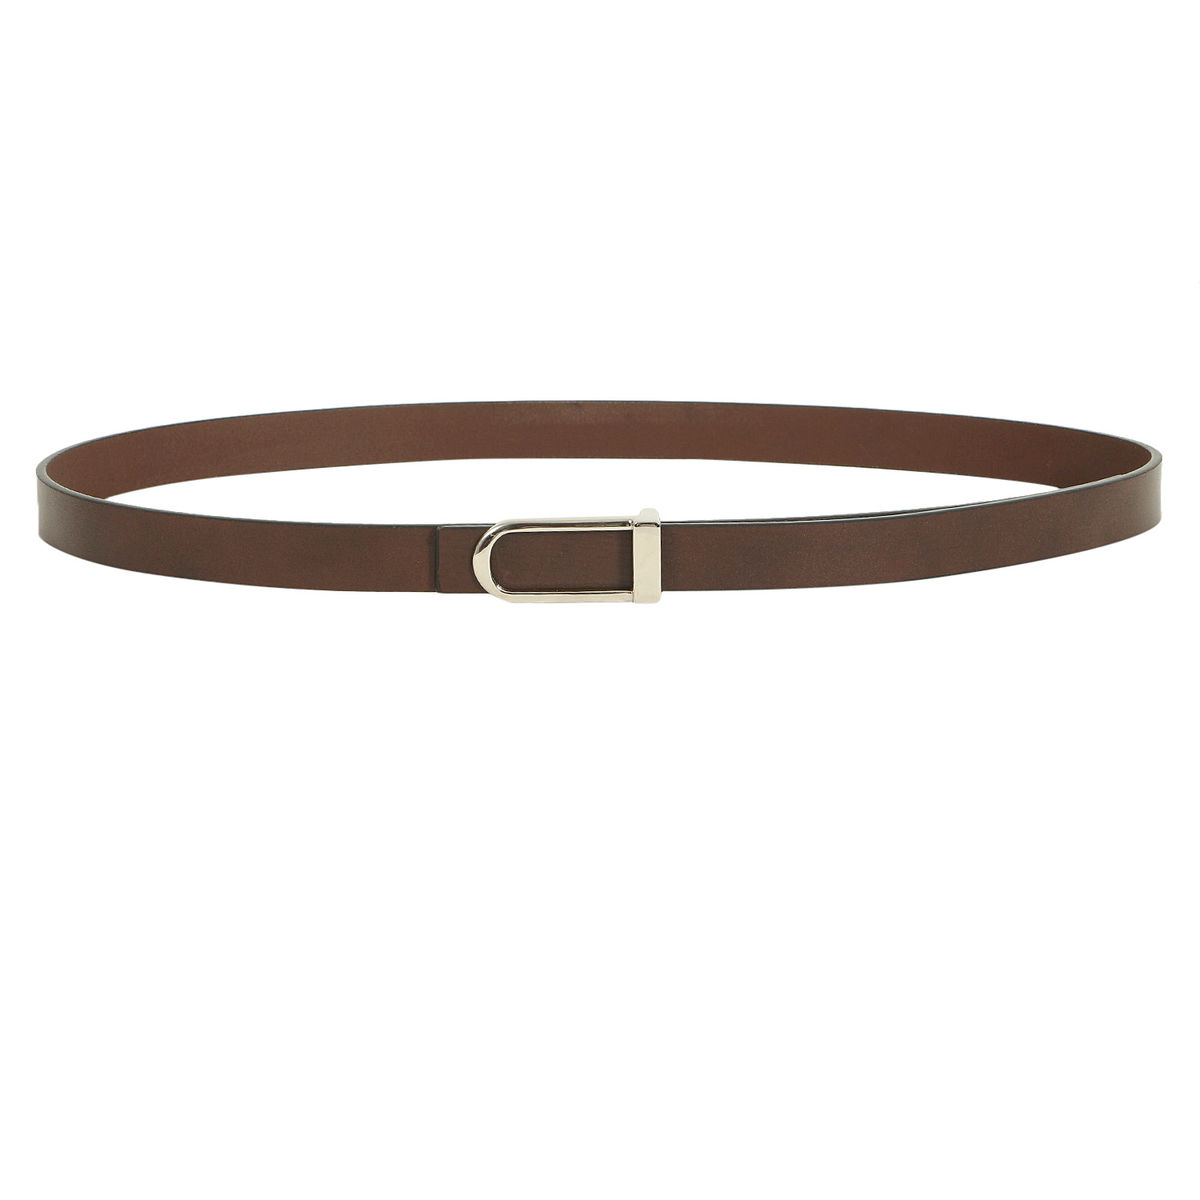 Ariat offers women's leather belts featuring full leather linings, signature buckles, and finishes for an elegant look.